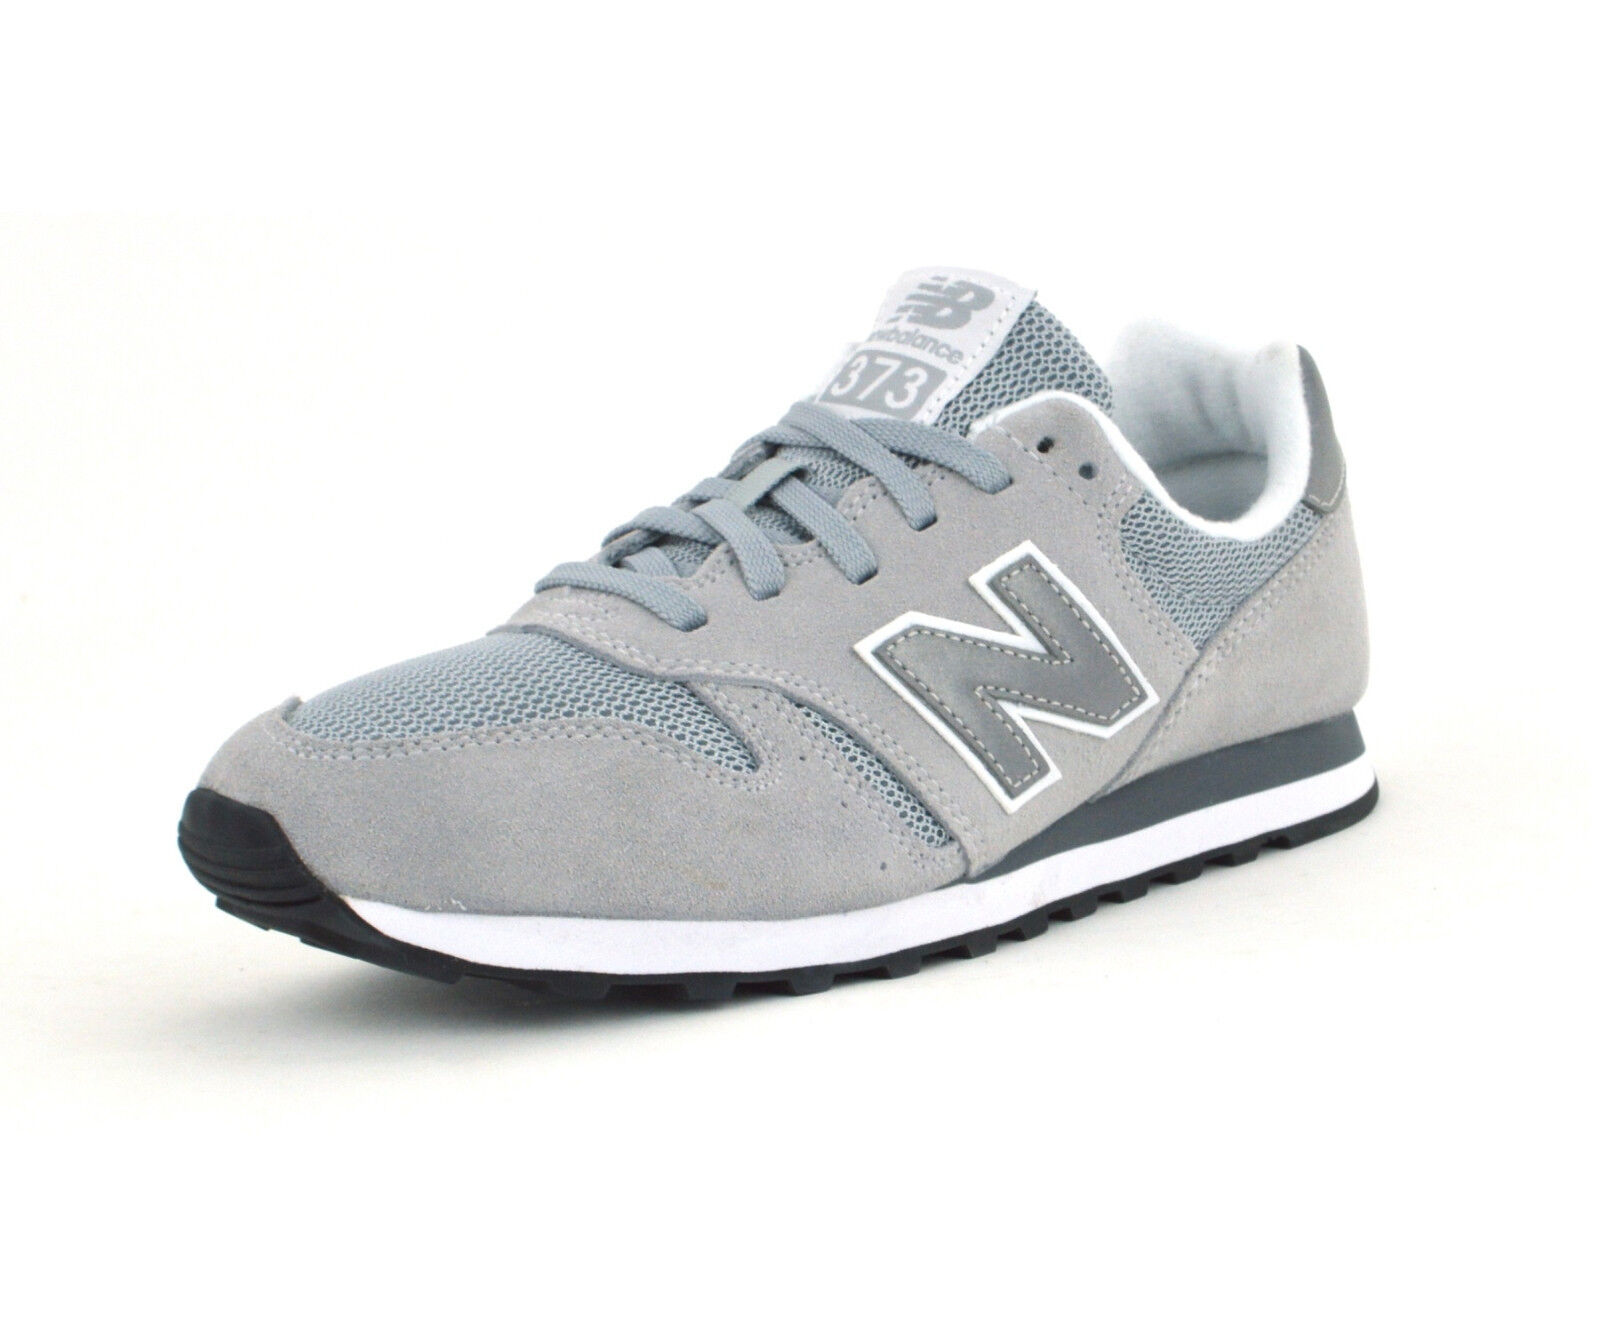 NEW BALANCE ML373GR - MENS TRAINERS - GREY - BRAND NEW - RETRO SNEAKERS